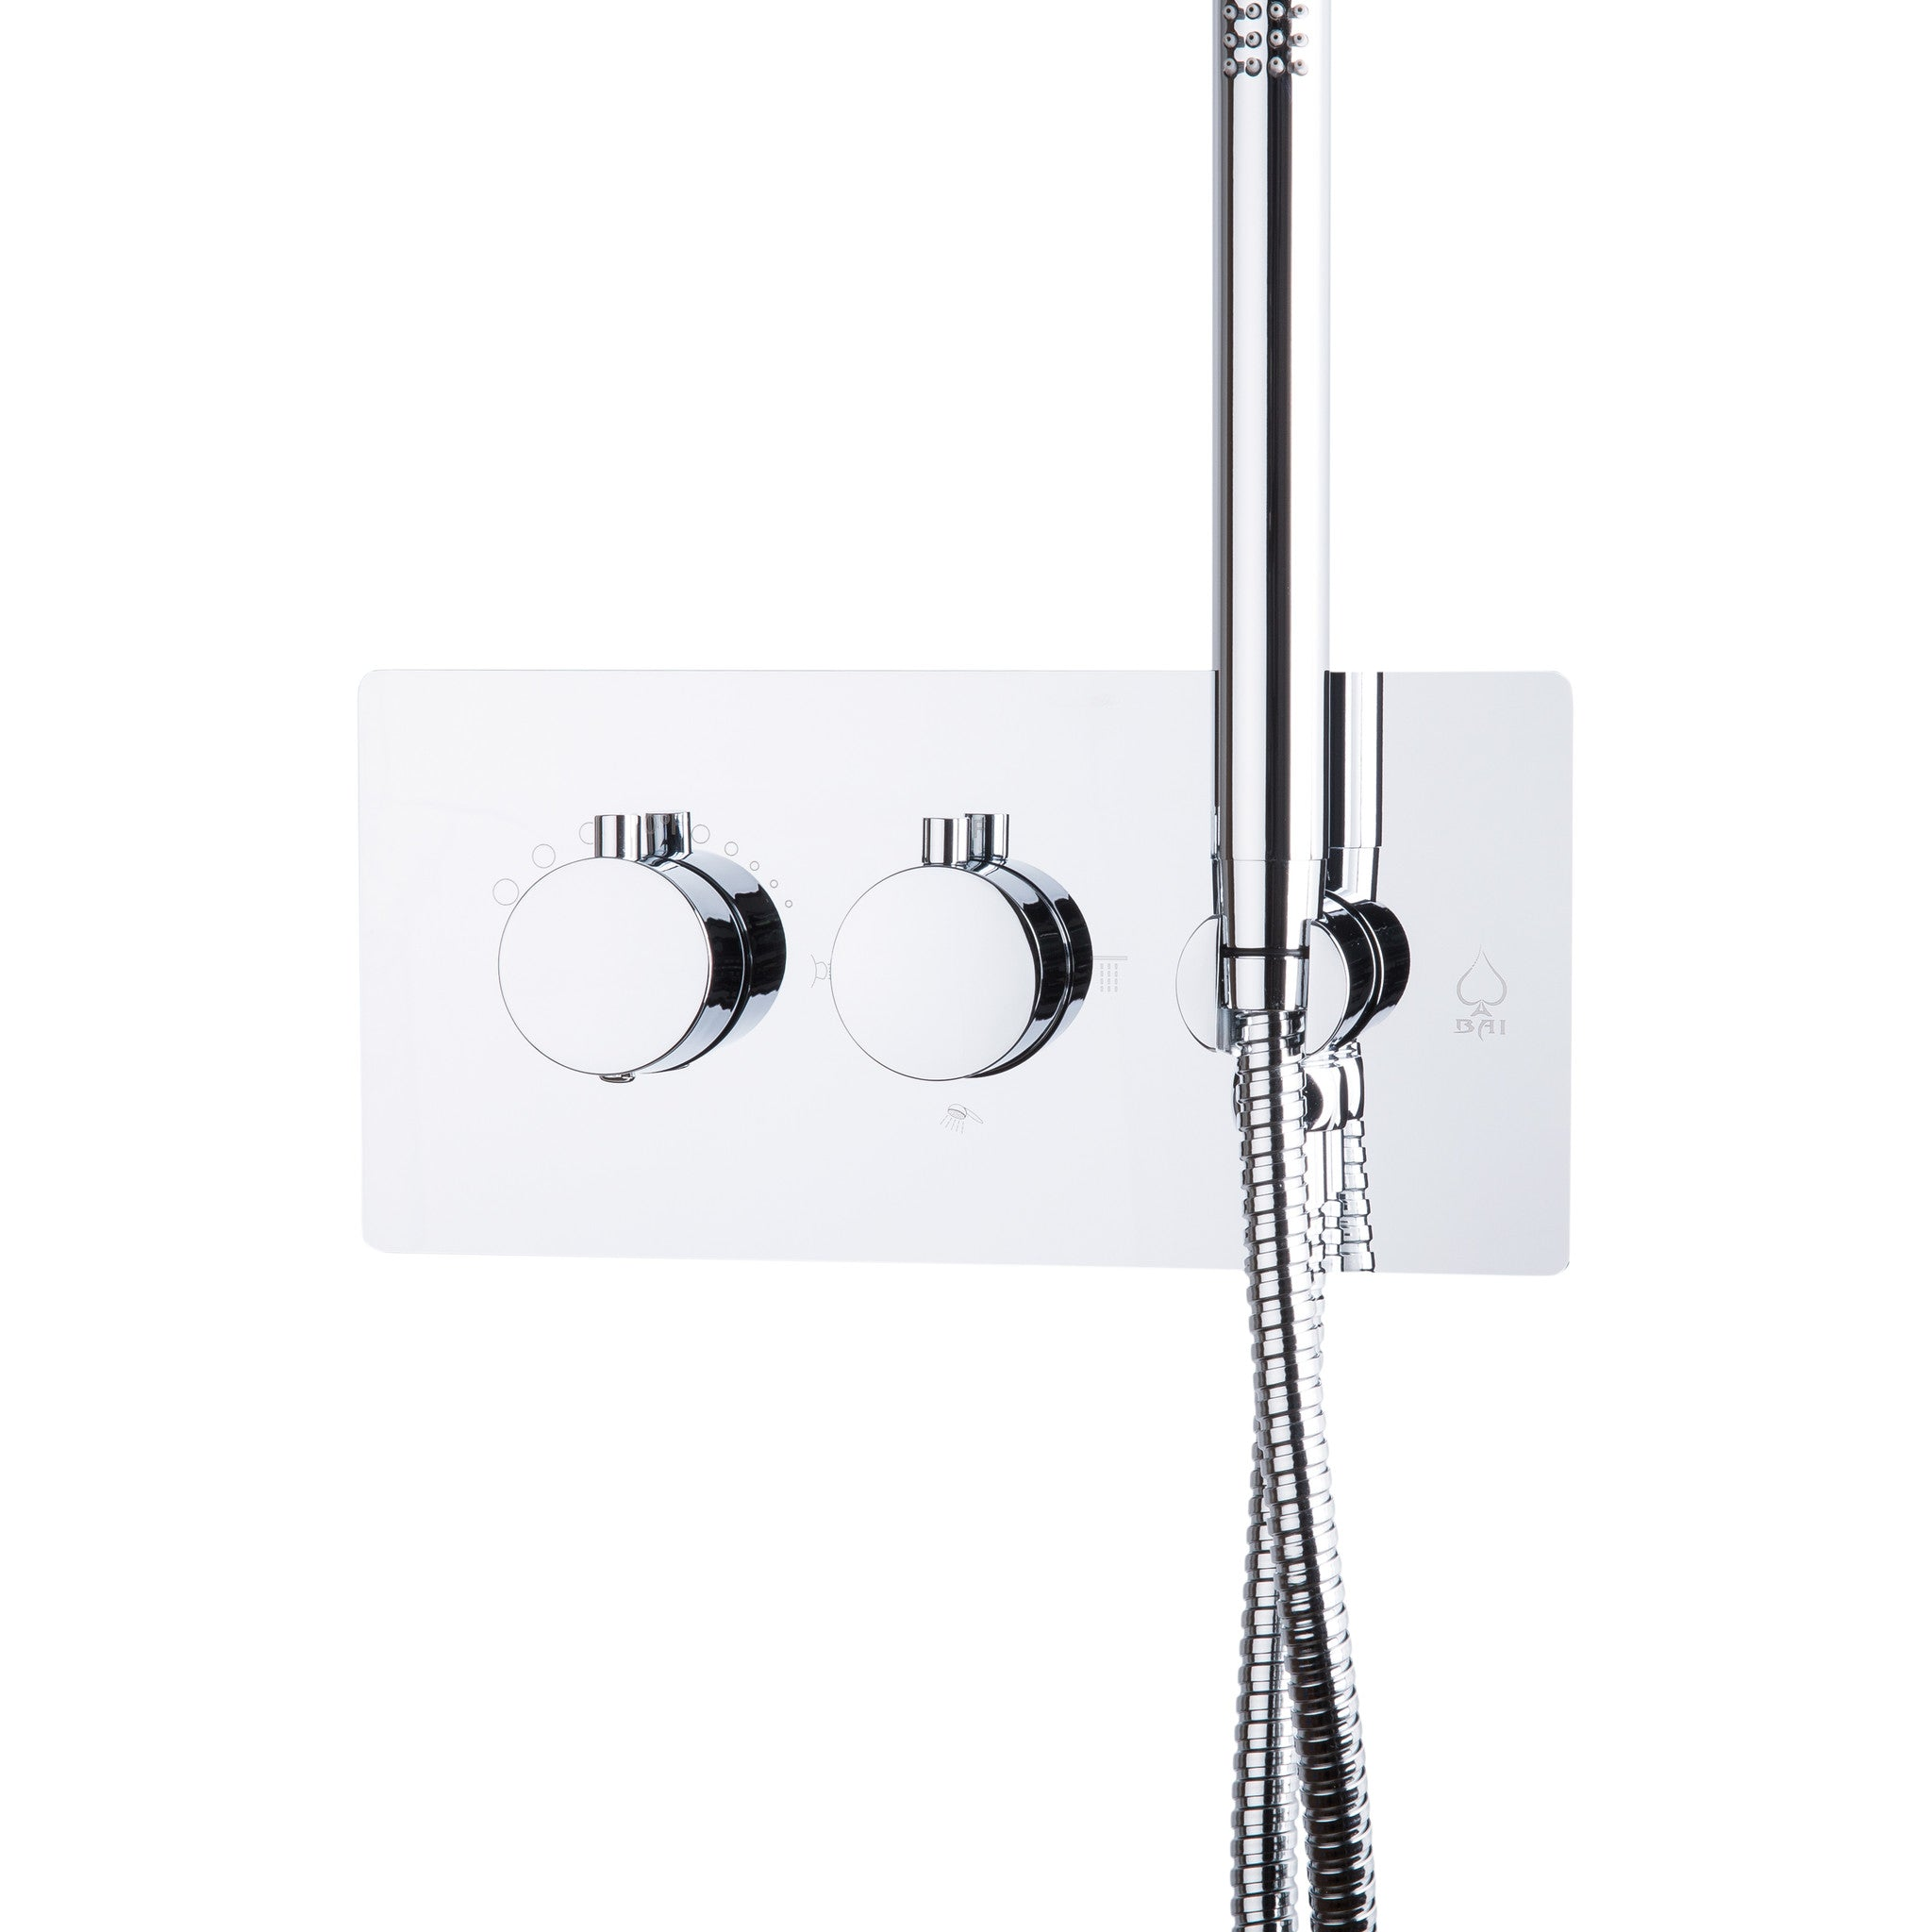 BAI 0112 Concealed Thermostatic Shower Mixer / Valve With Handheld ...